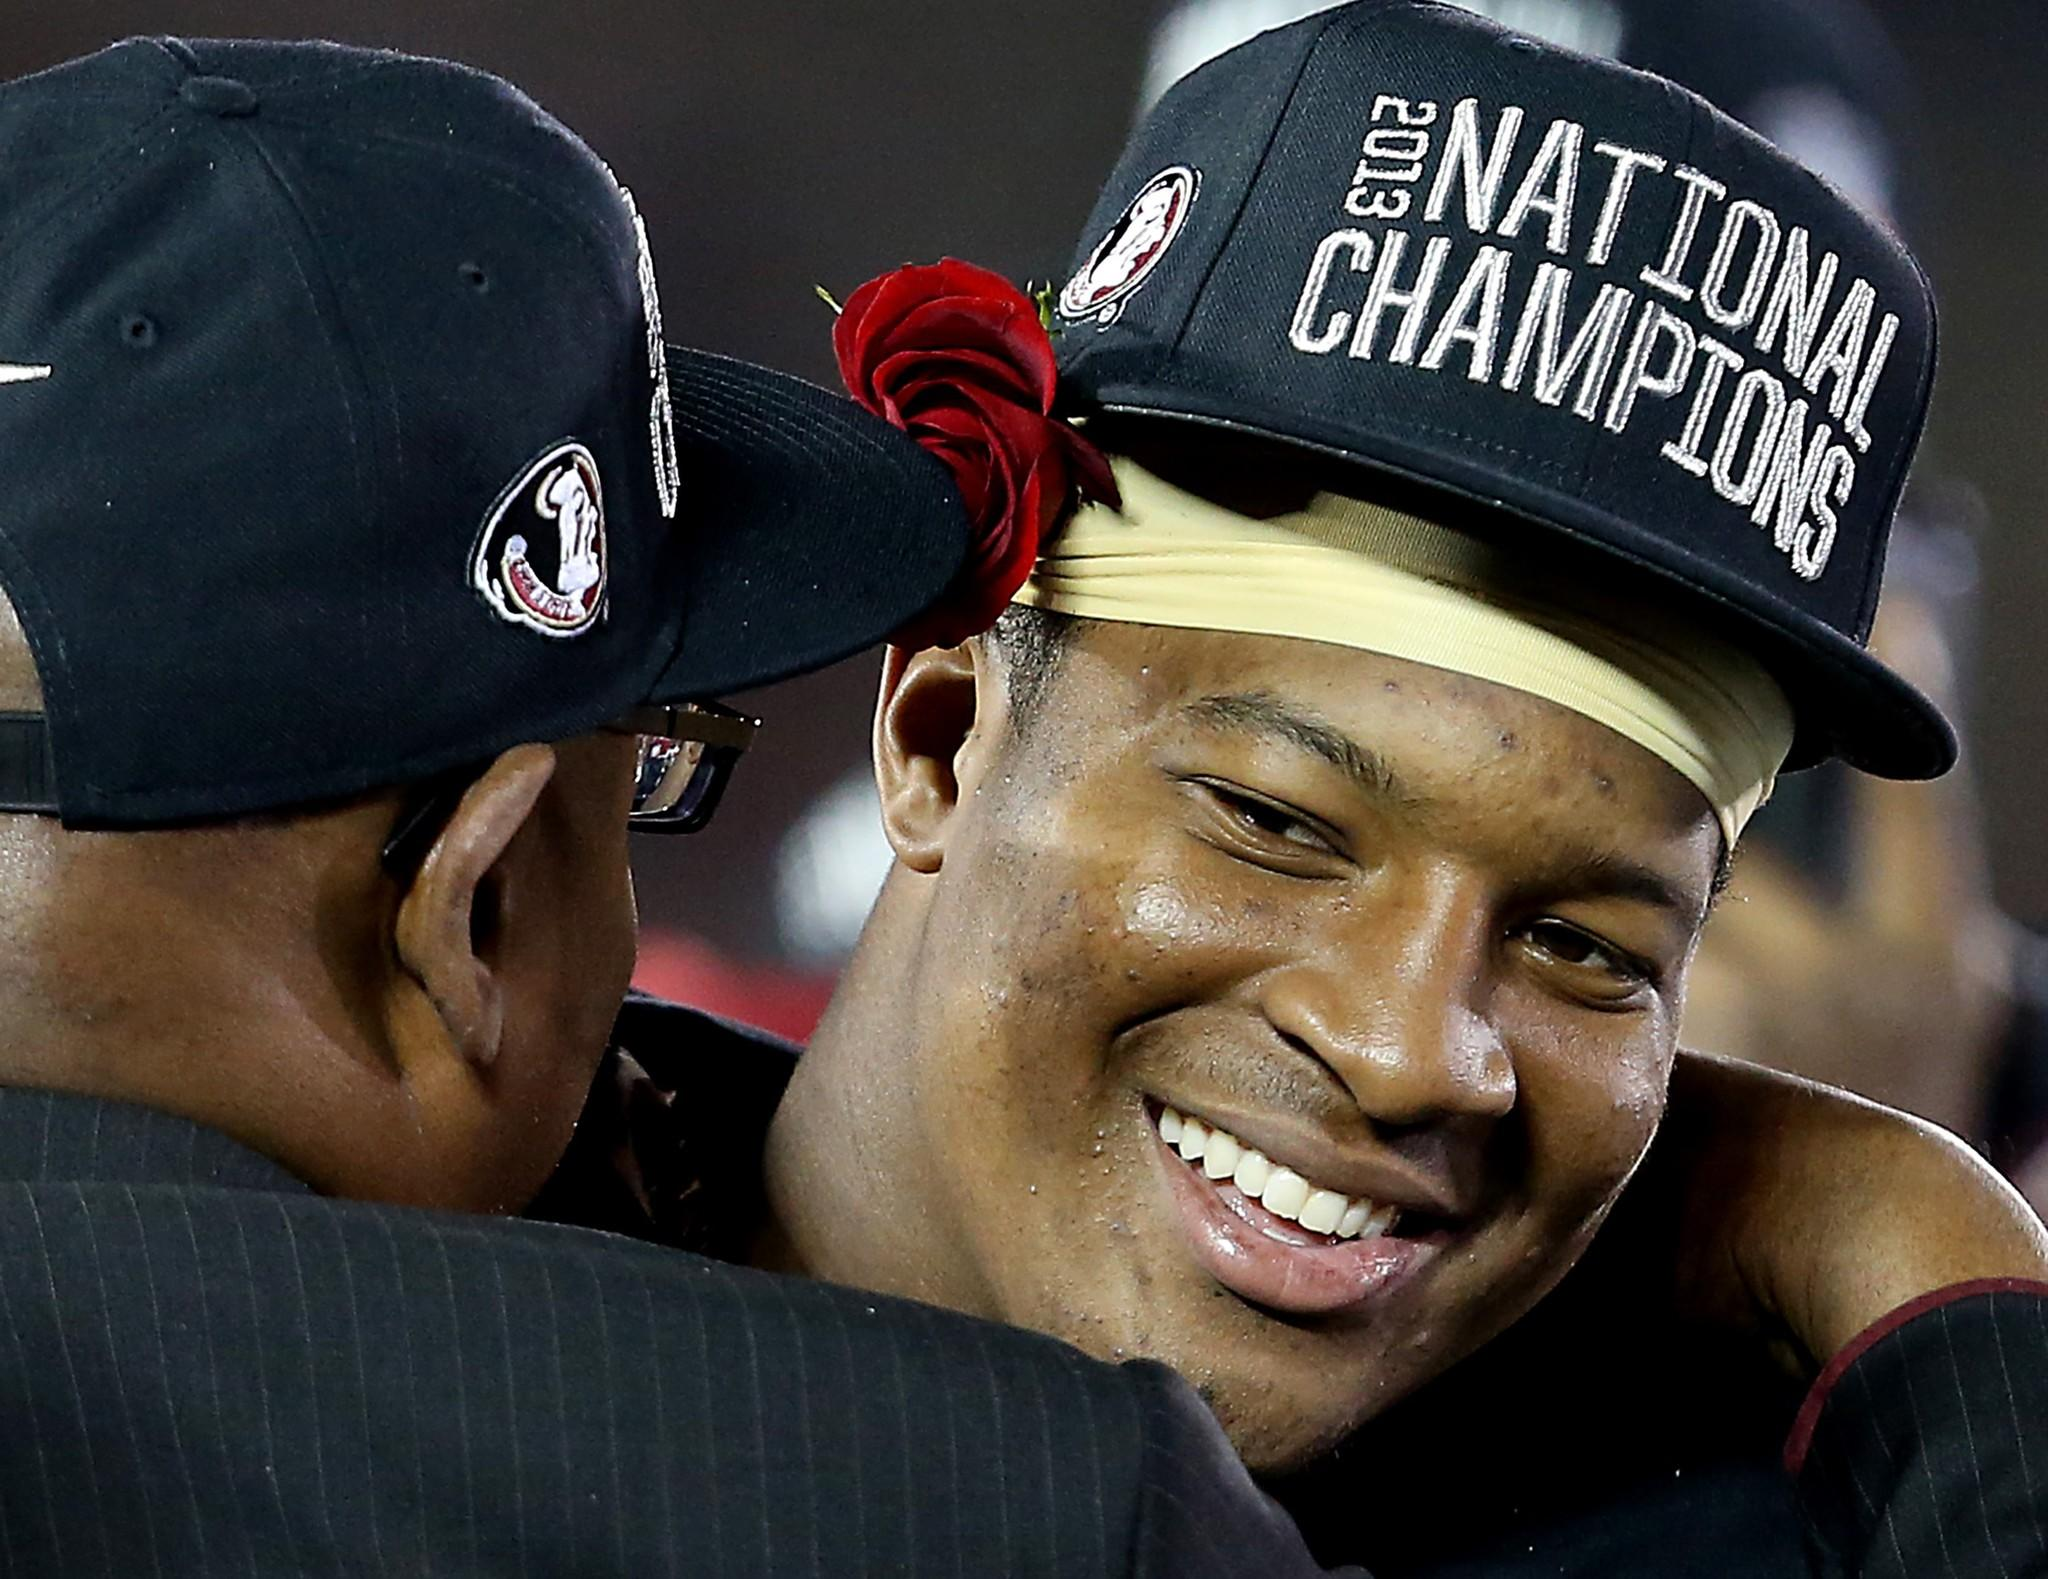 Florida State quarterback Jameis Winston is congratulated after leading the Seminoles to a last-minute victory over Auburn in the BCS national championship game on Monday night at the Rose Bowl in Pasadena.